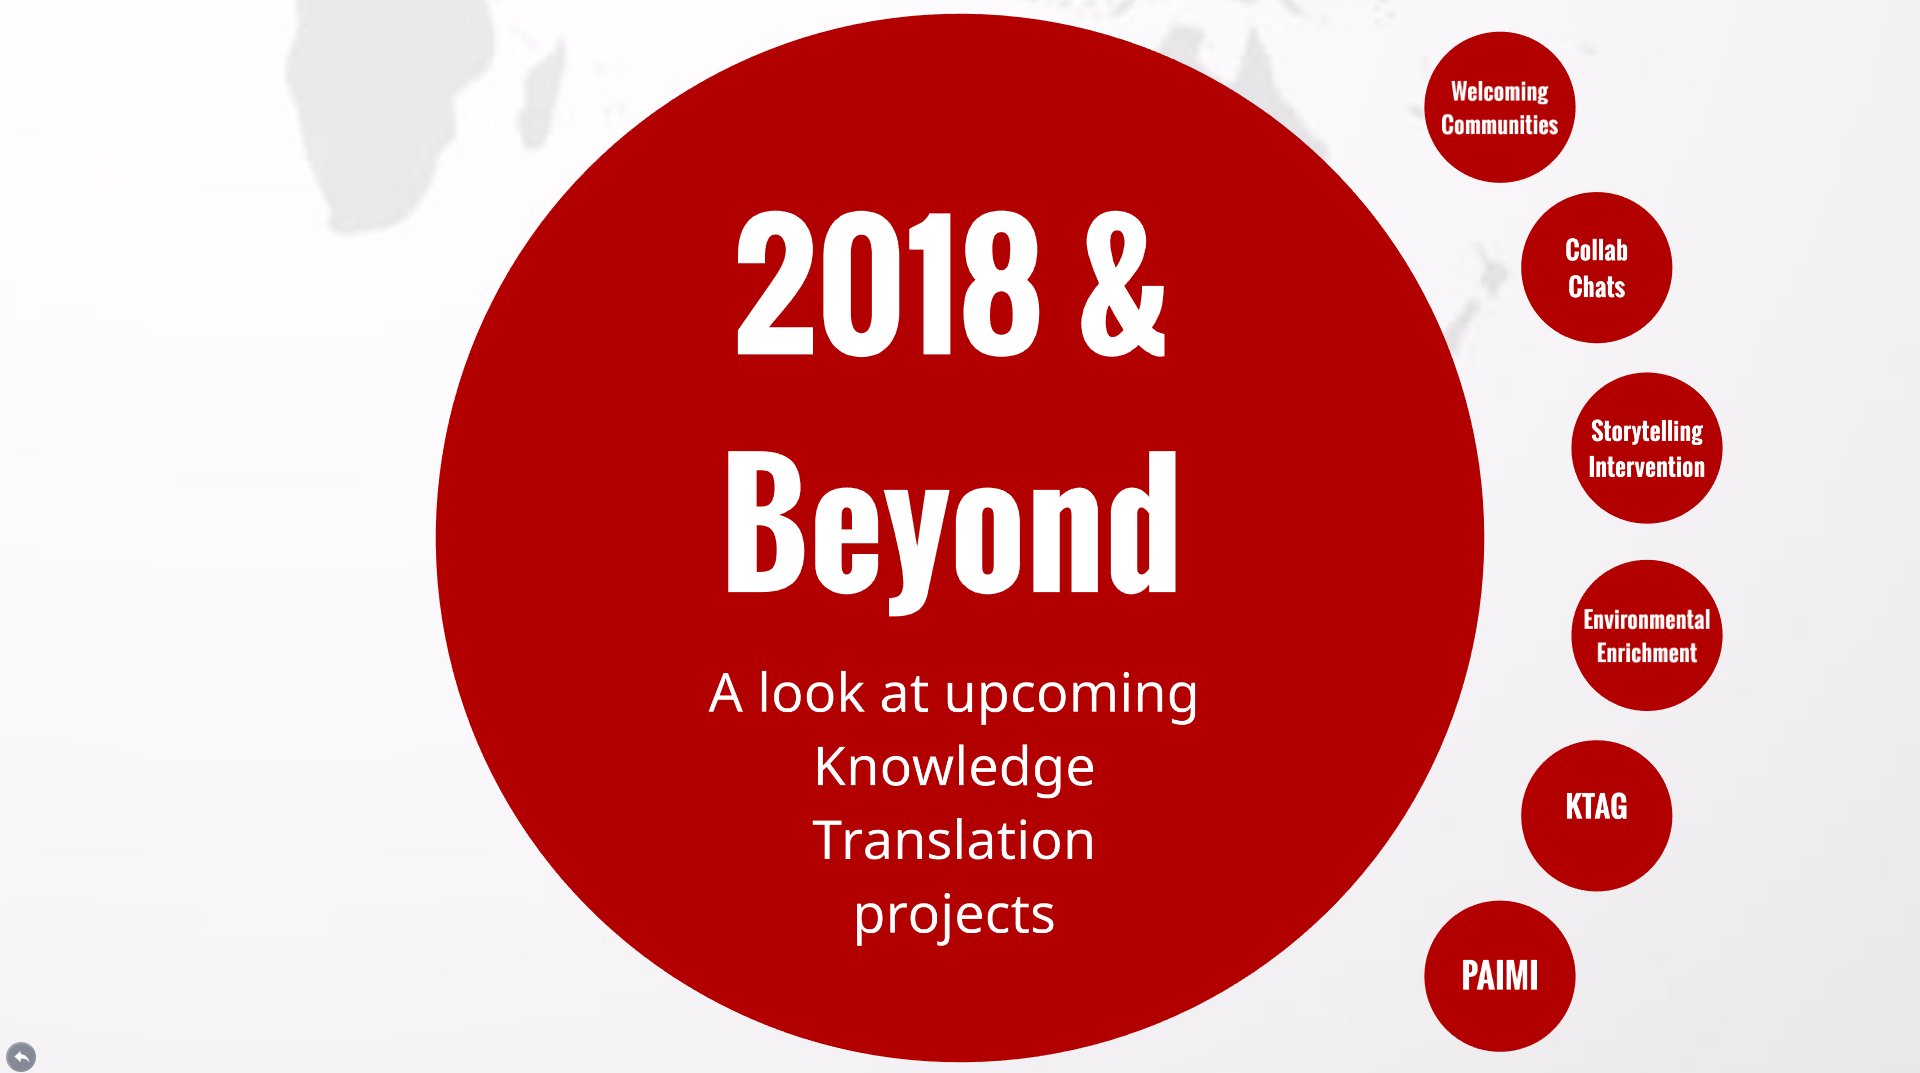 "Title slide ""2018 and beyond a look at upcoming knowledge translation projects"" with subtitle bubbles of welcoming communities, collab chats, storytelling intervention, environmental enrichment, KTAG, and PAIMI"